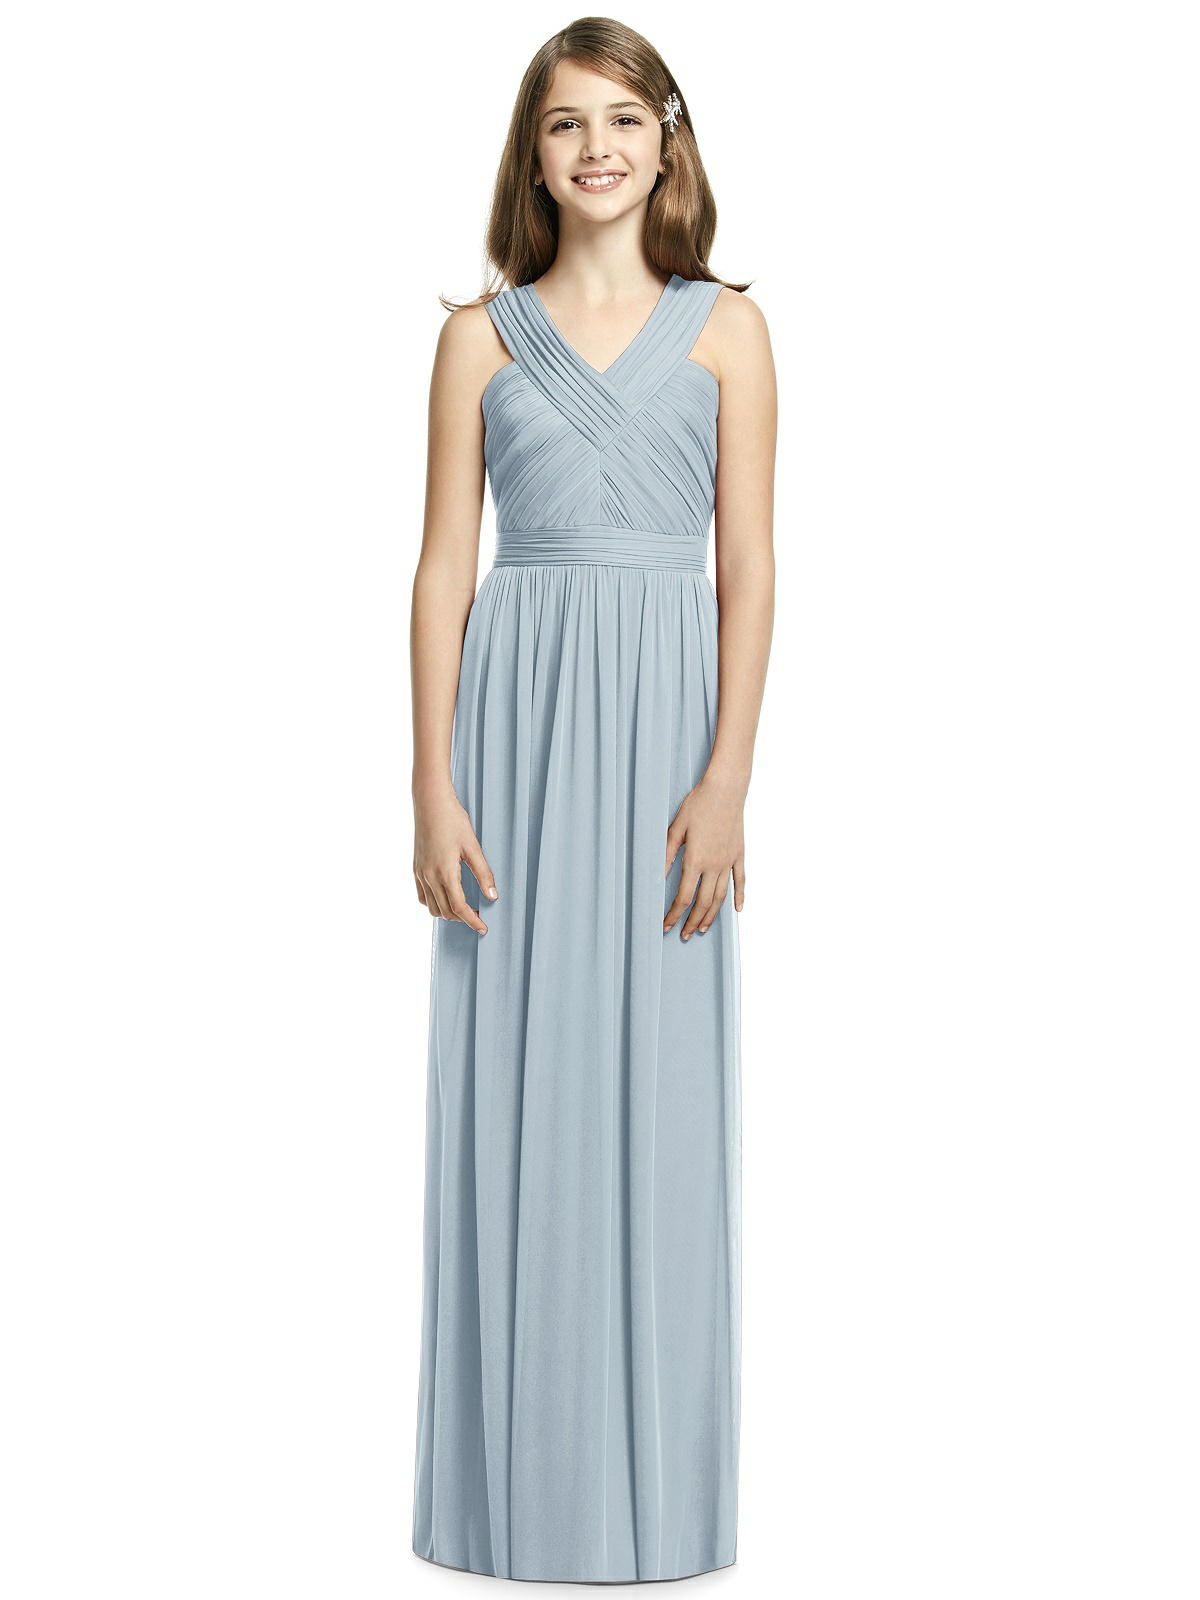 Dessy Collection Junior Bridesmaid Dress JR535 | The Dessy Group